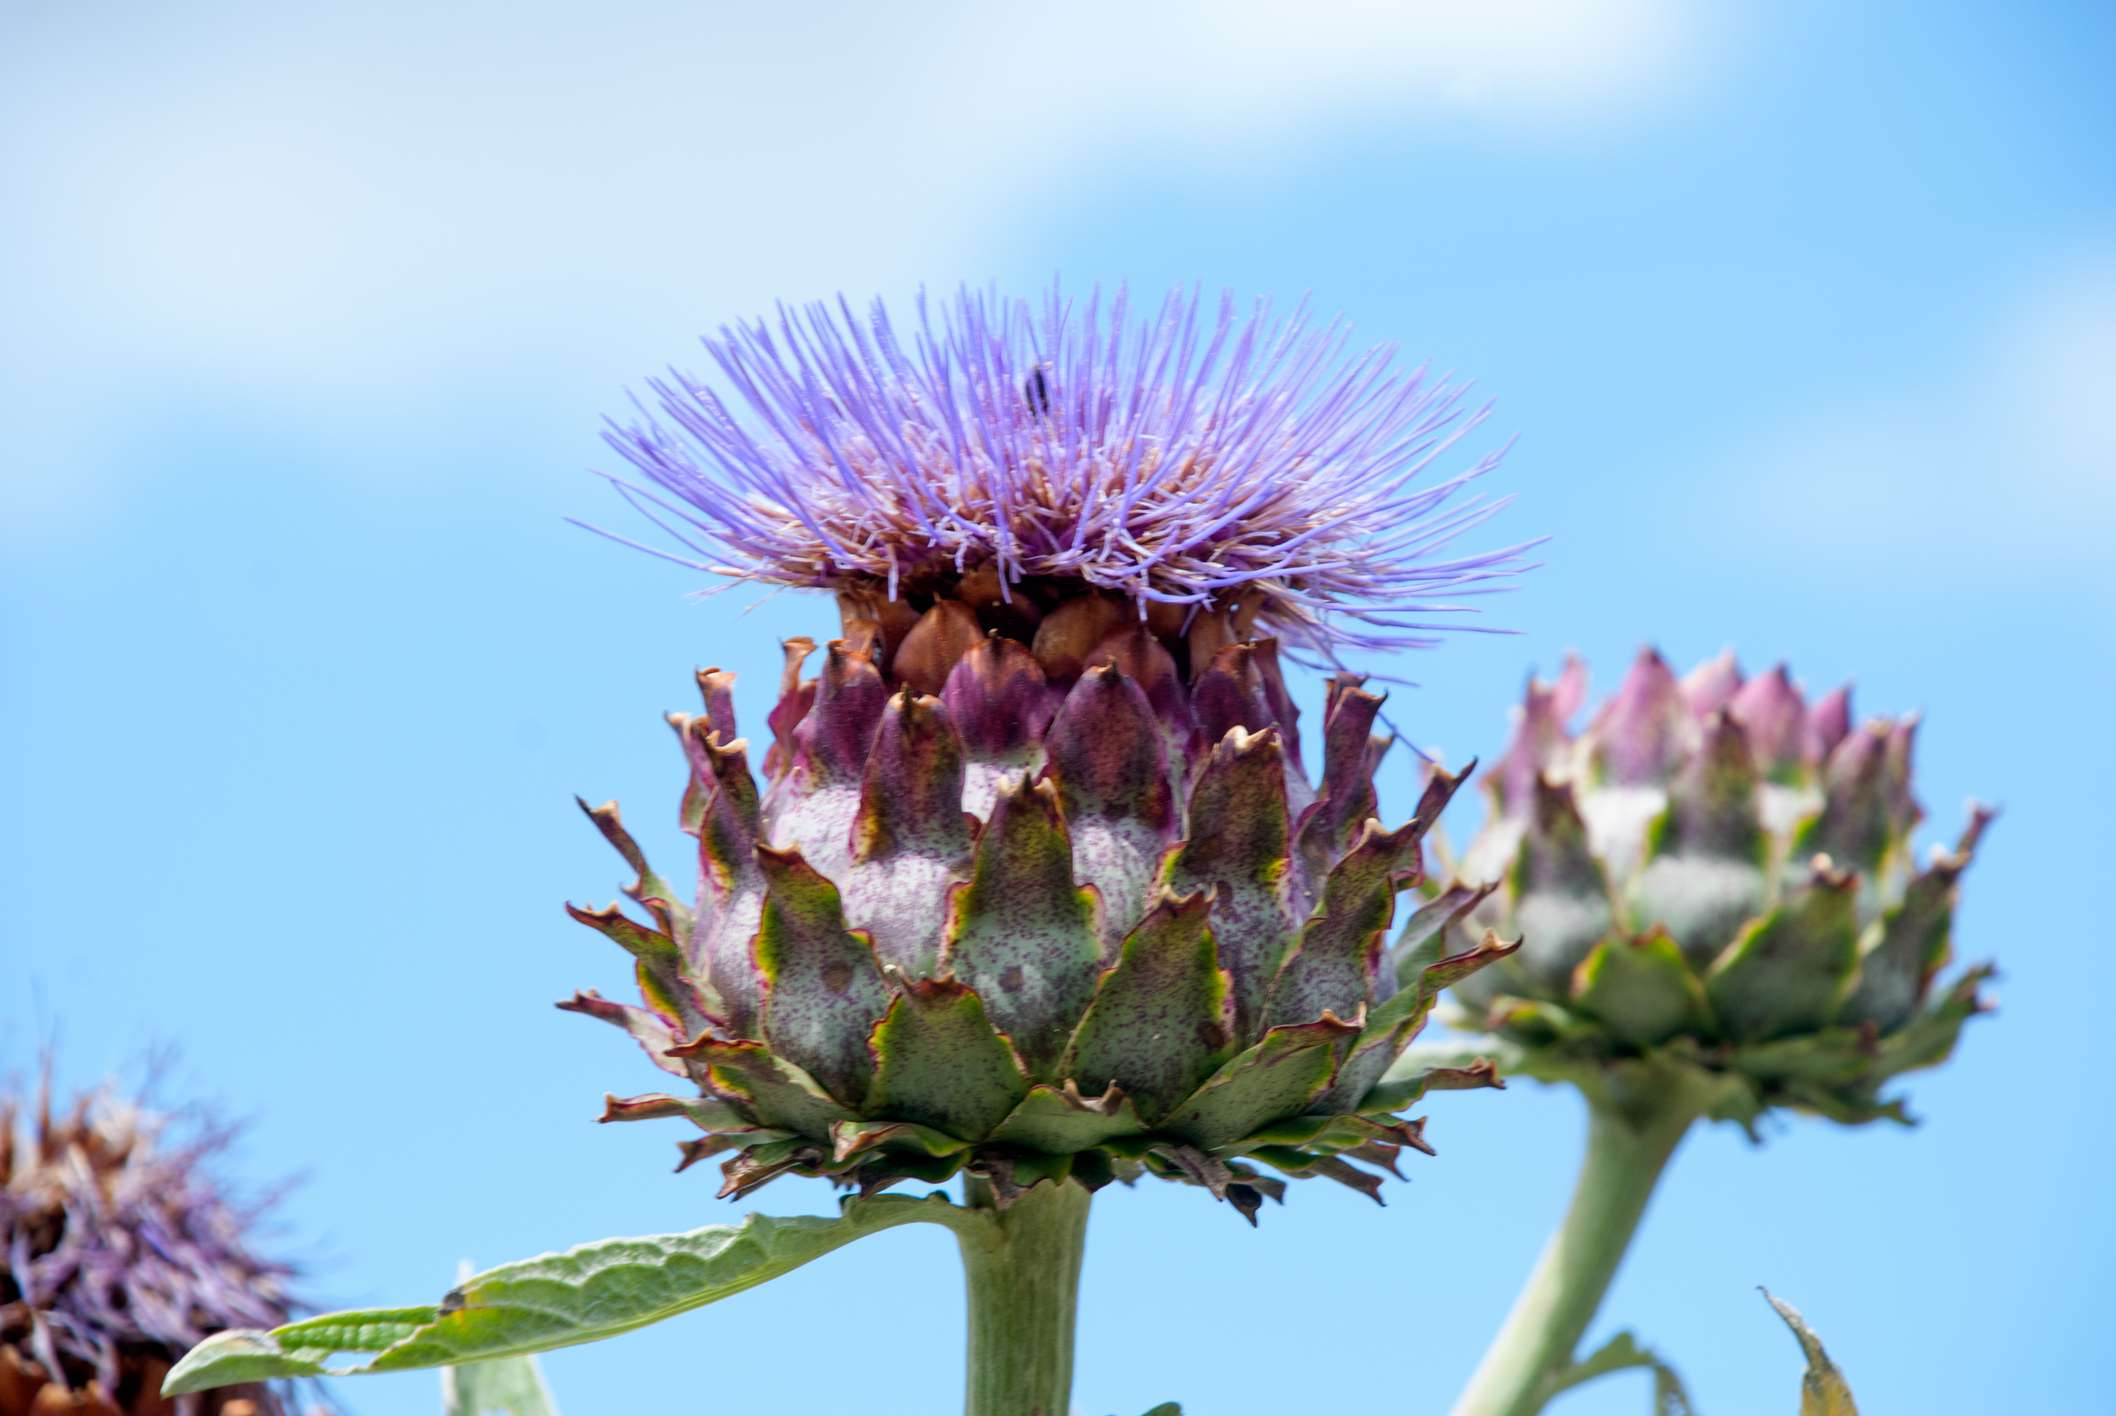 A blooming artichoke with a large bud and purple flower